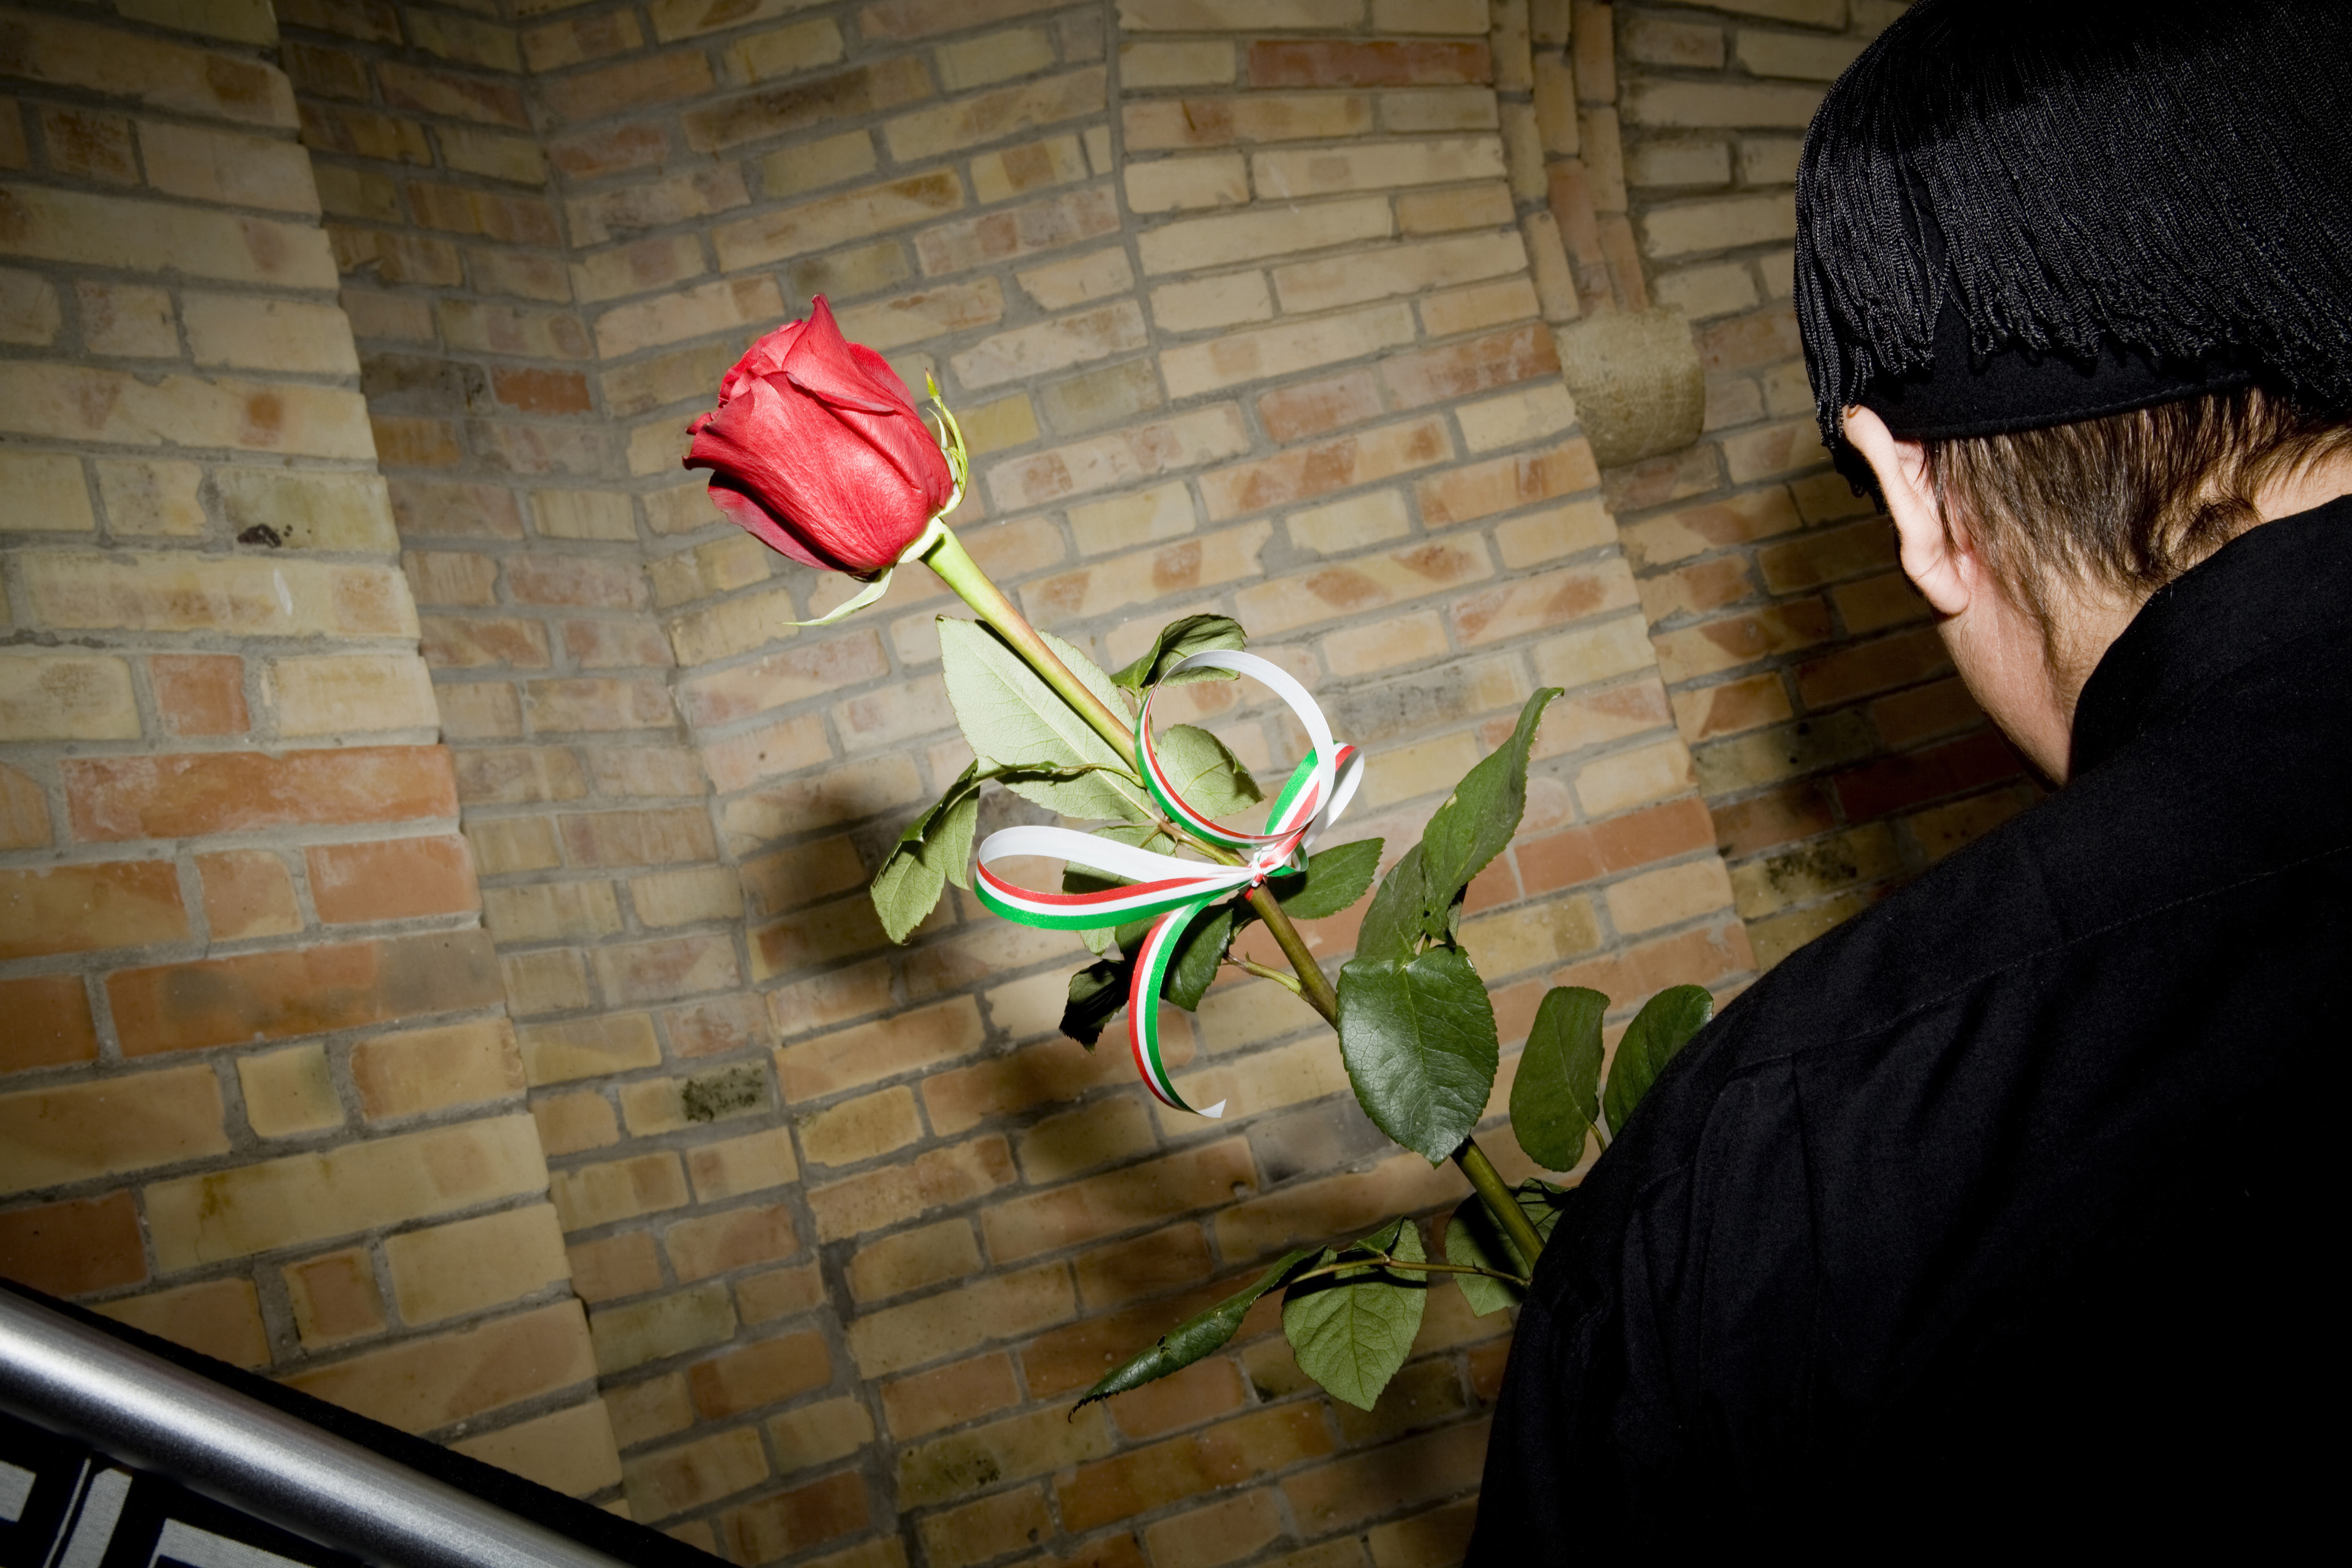 A visitor brings a rose to Benito Mussolini's tomb in Predappio, Italy, on Oct. 30, 2011. (The New York Times)